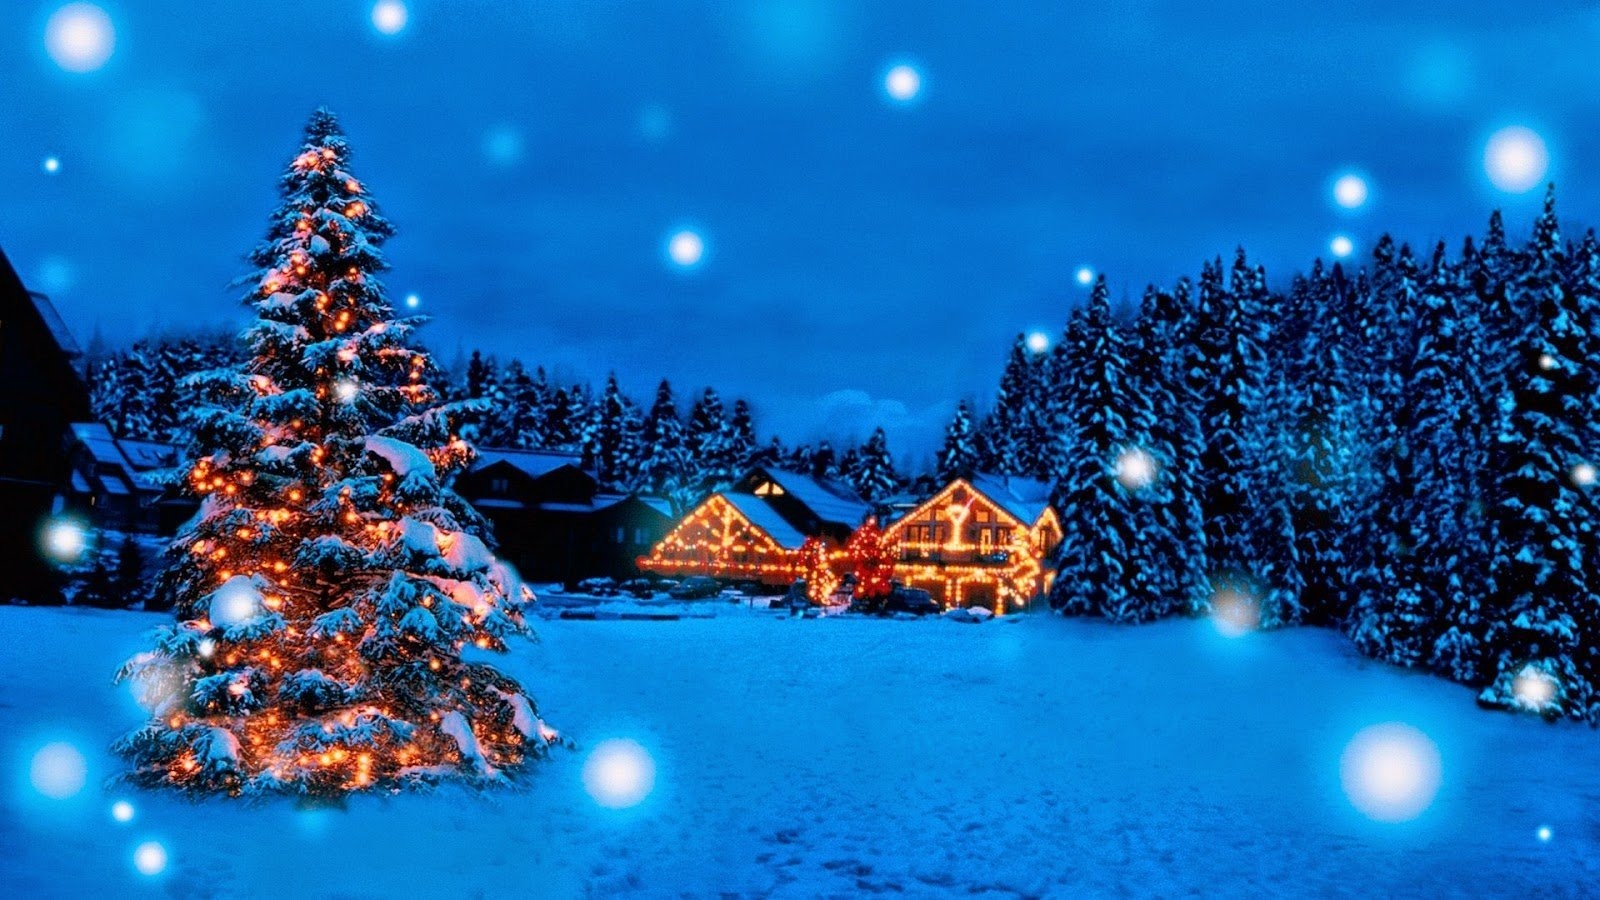 Christmas Background Hd.72 Free Christmas Backgrounds Wallpaper On Wallpapersafari